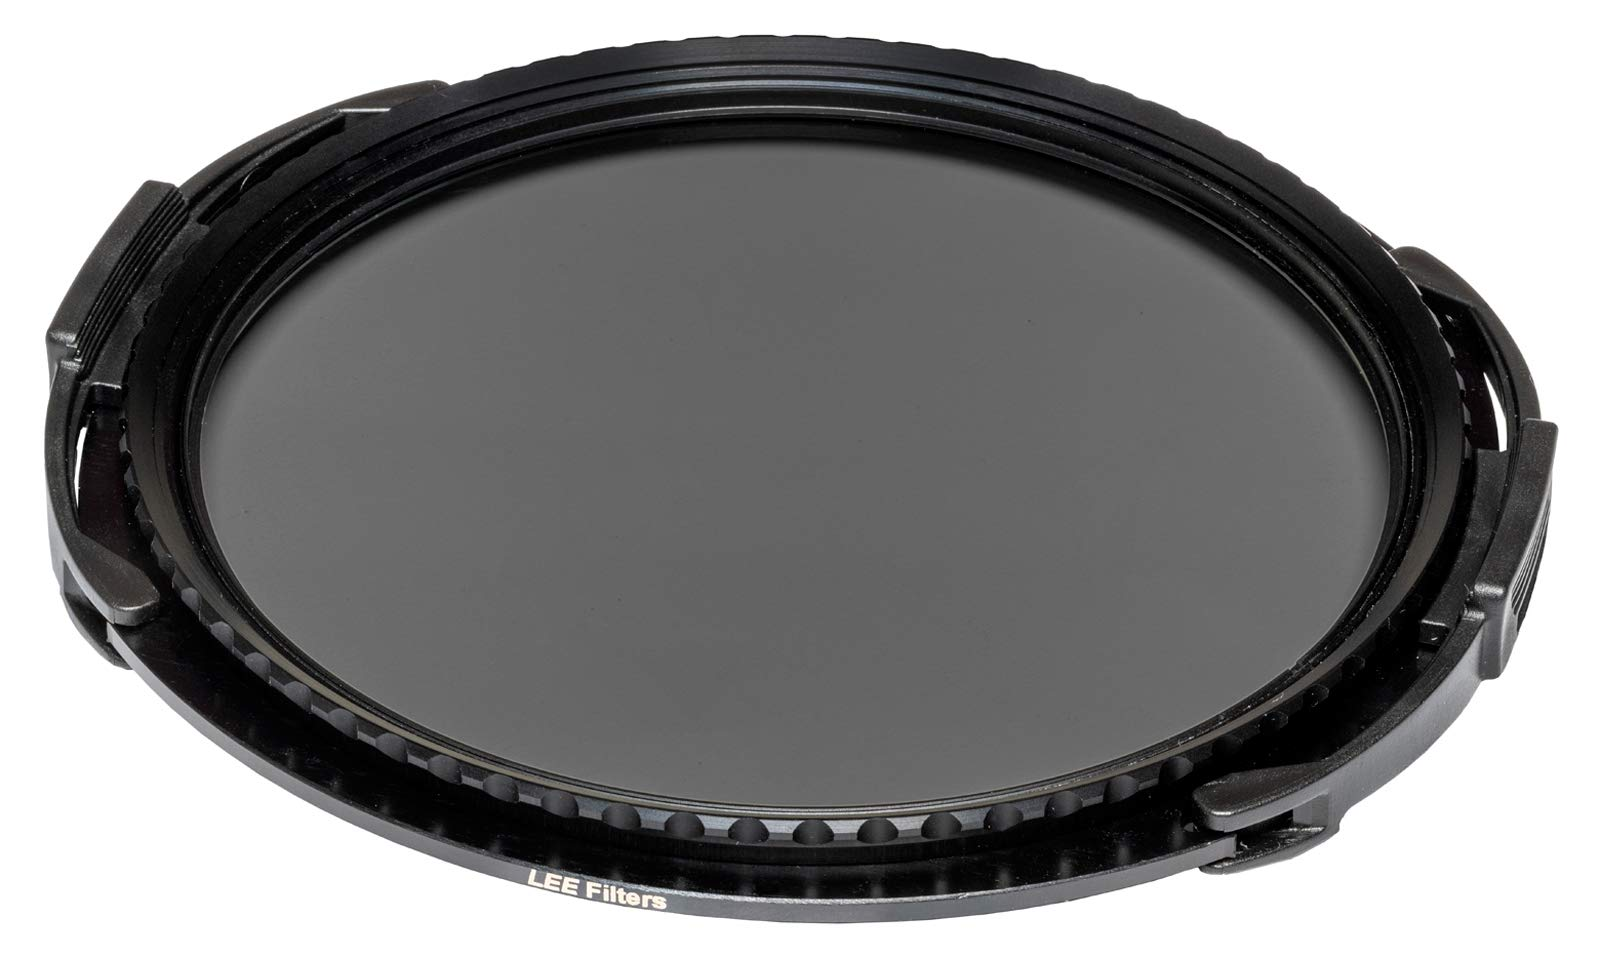 LEE Filters LEE100 Polarizer - for use with LEE100 Filter Holder by Lee Filters